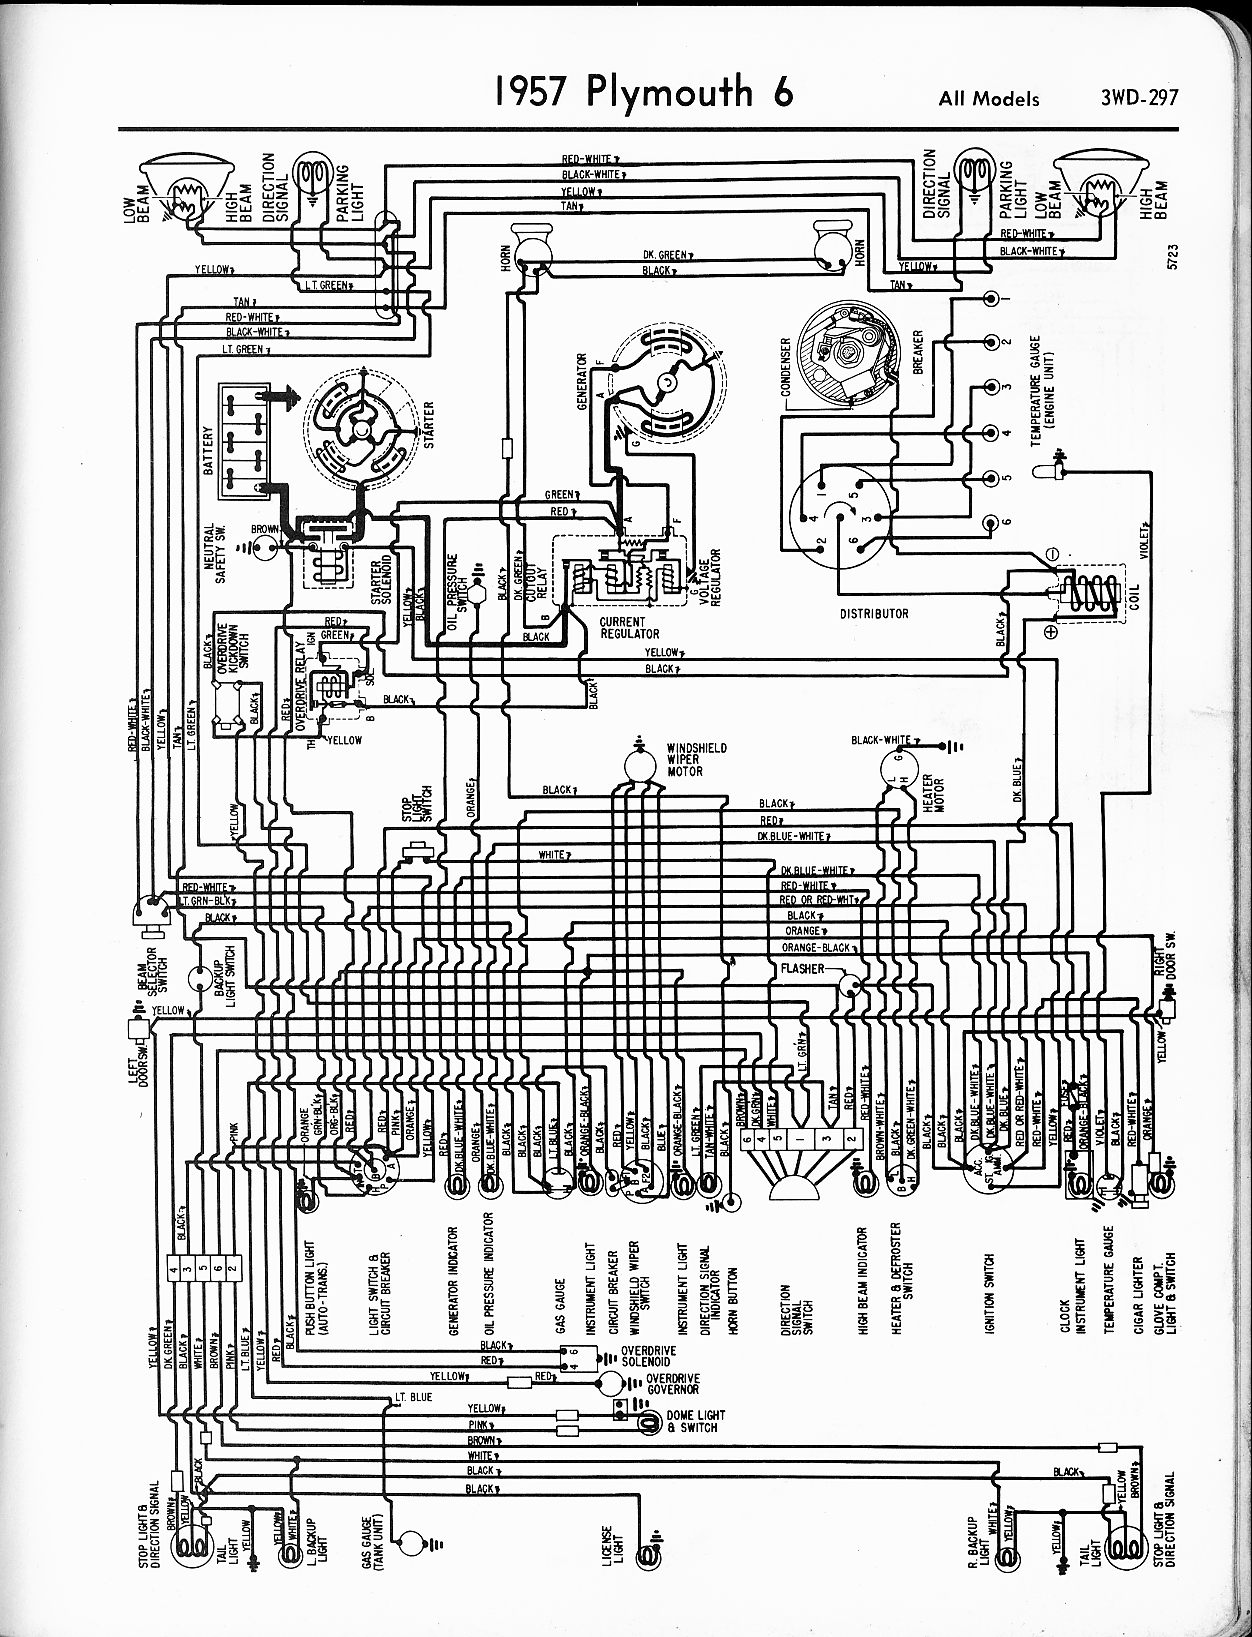 1967 Gtx Wiring Diagram on 1950 dodge wiring diagram